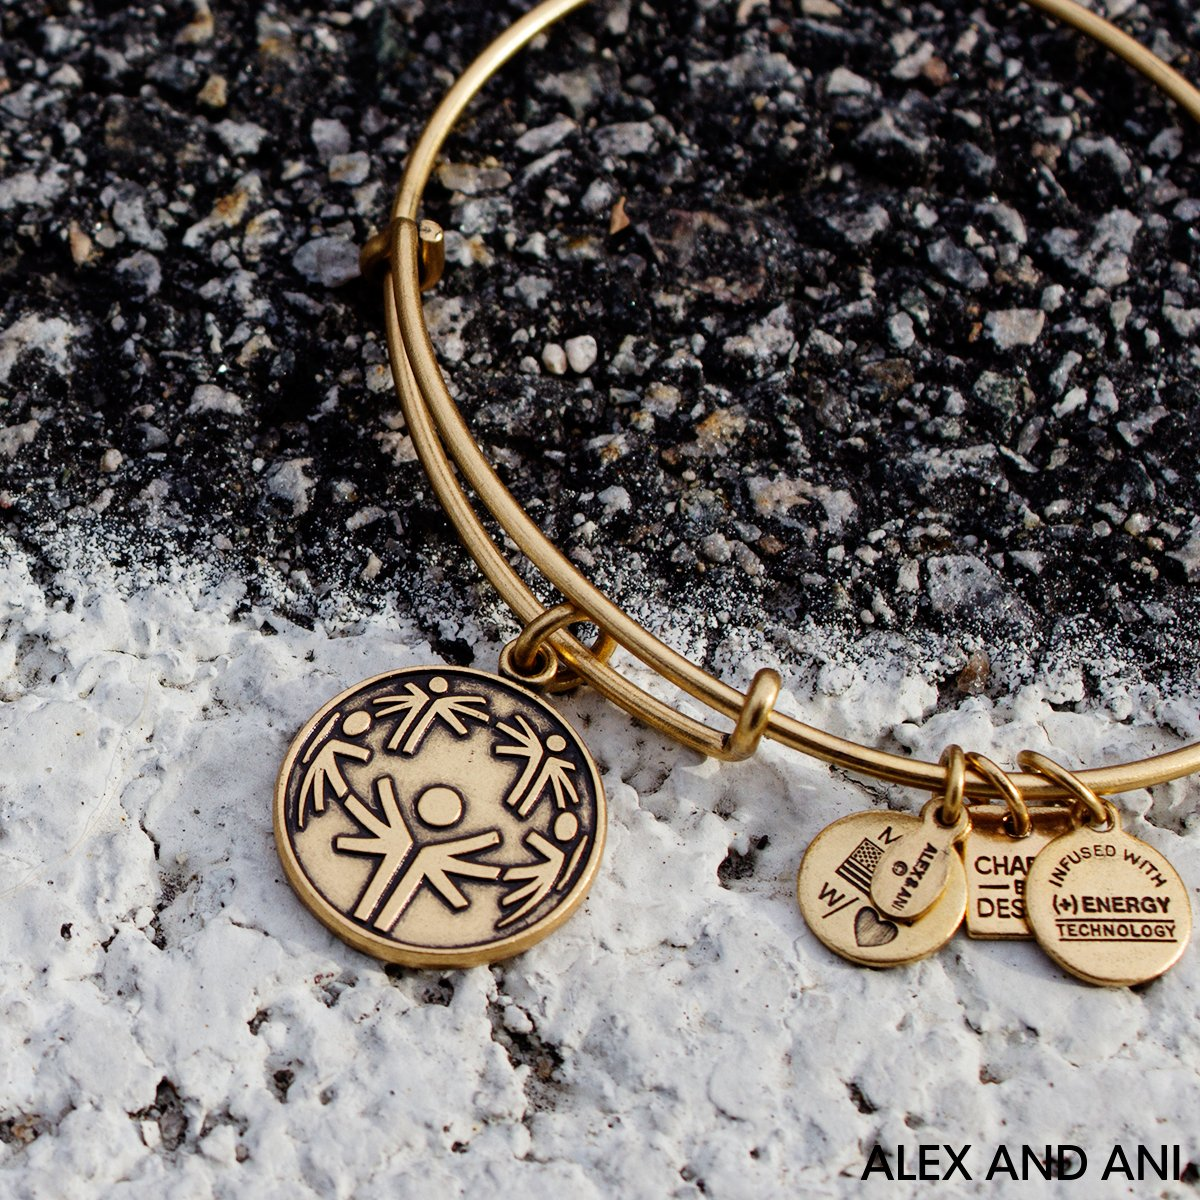 Bring our movement wherever you go w/ the @SpecialOlympics &amp; @alexandani #PowerofUnity bangle! <br>http://pic.twitter.com/w6JRpsHmIc